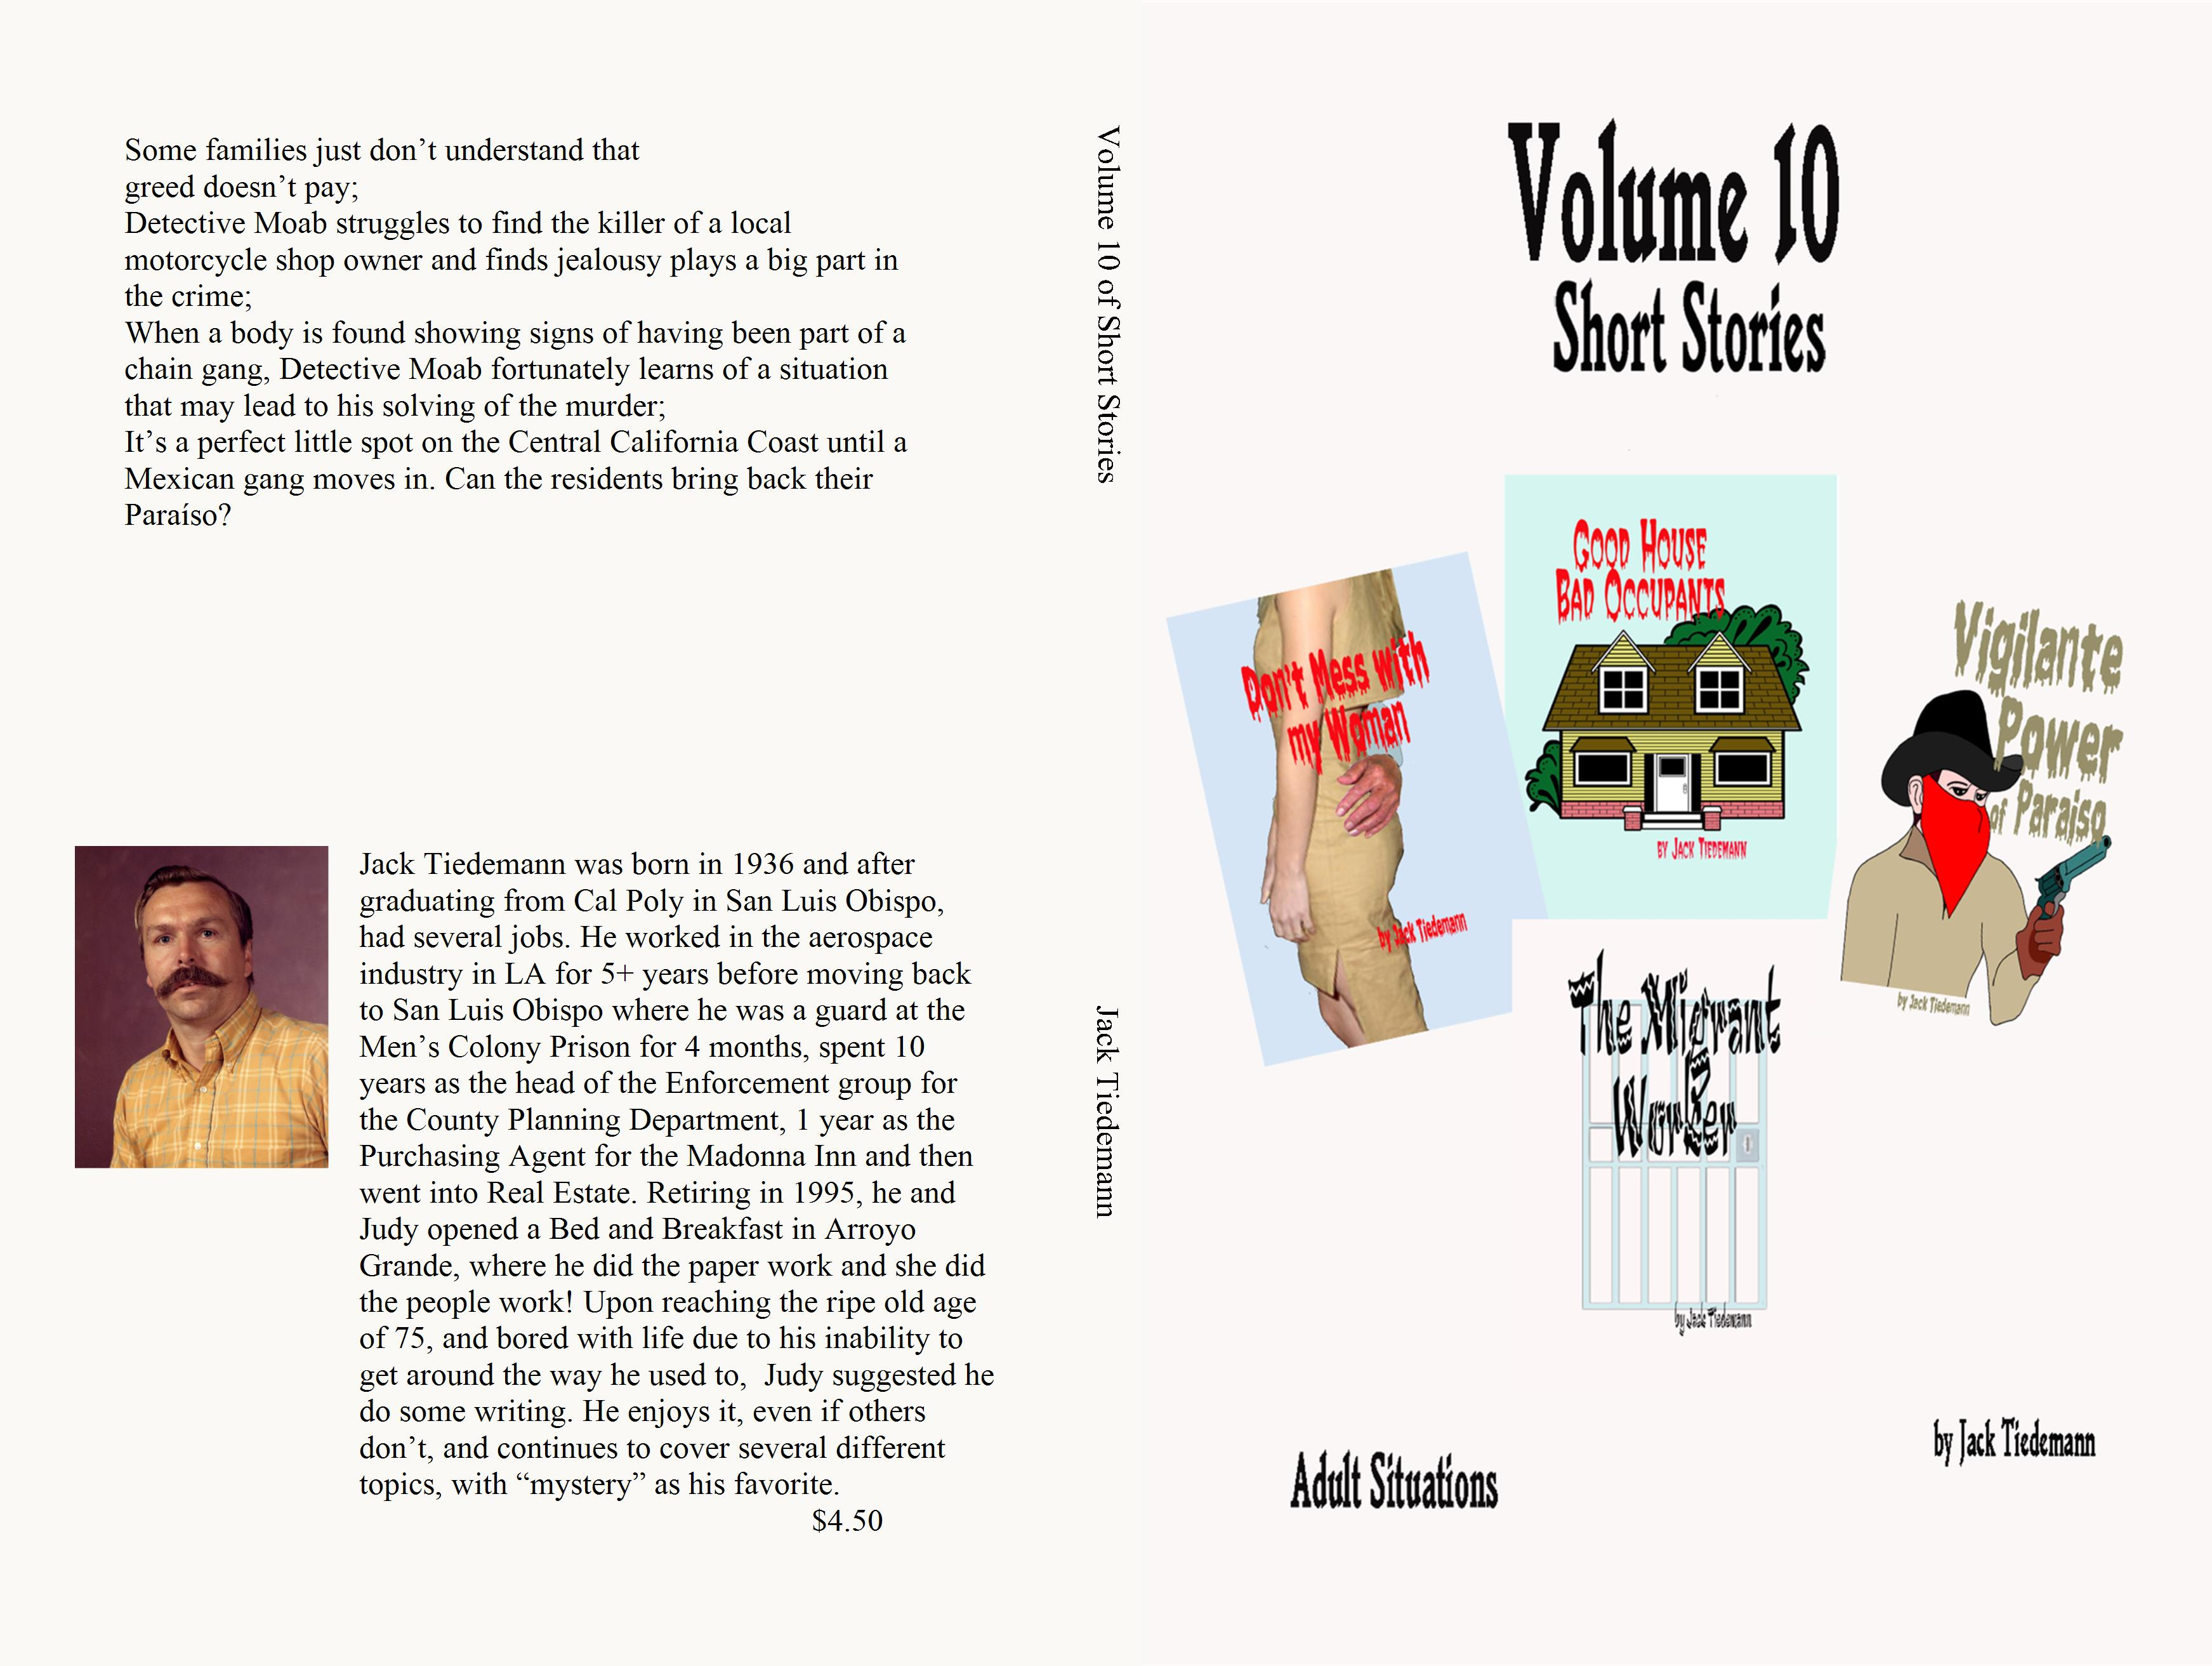 Volume 10 of Short Stories by Jack Tiedemann cover image